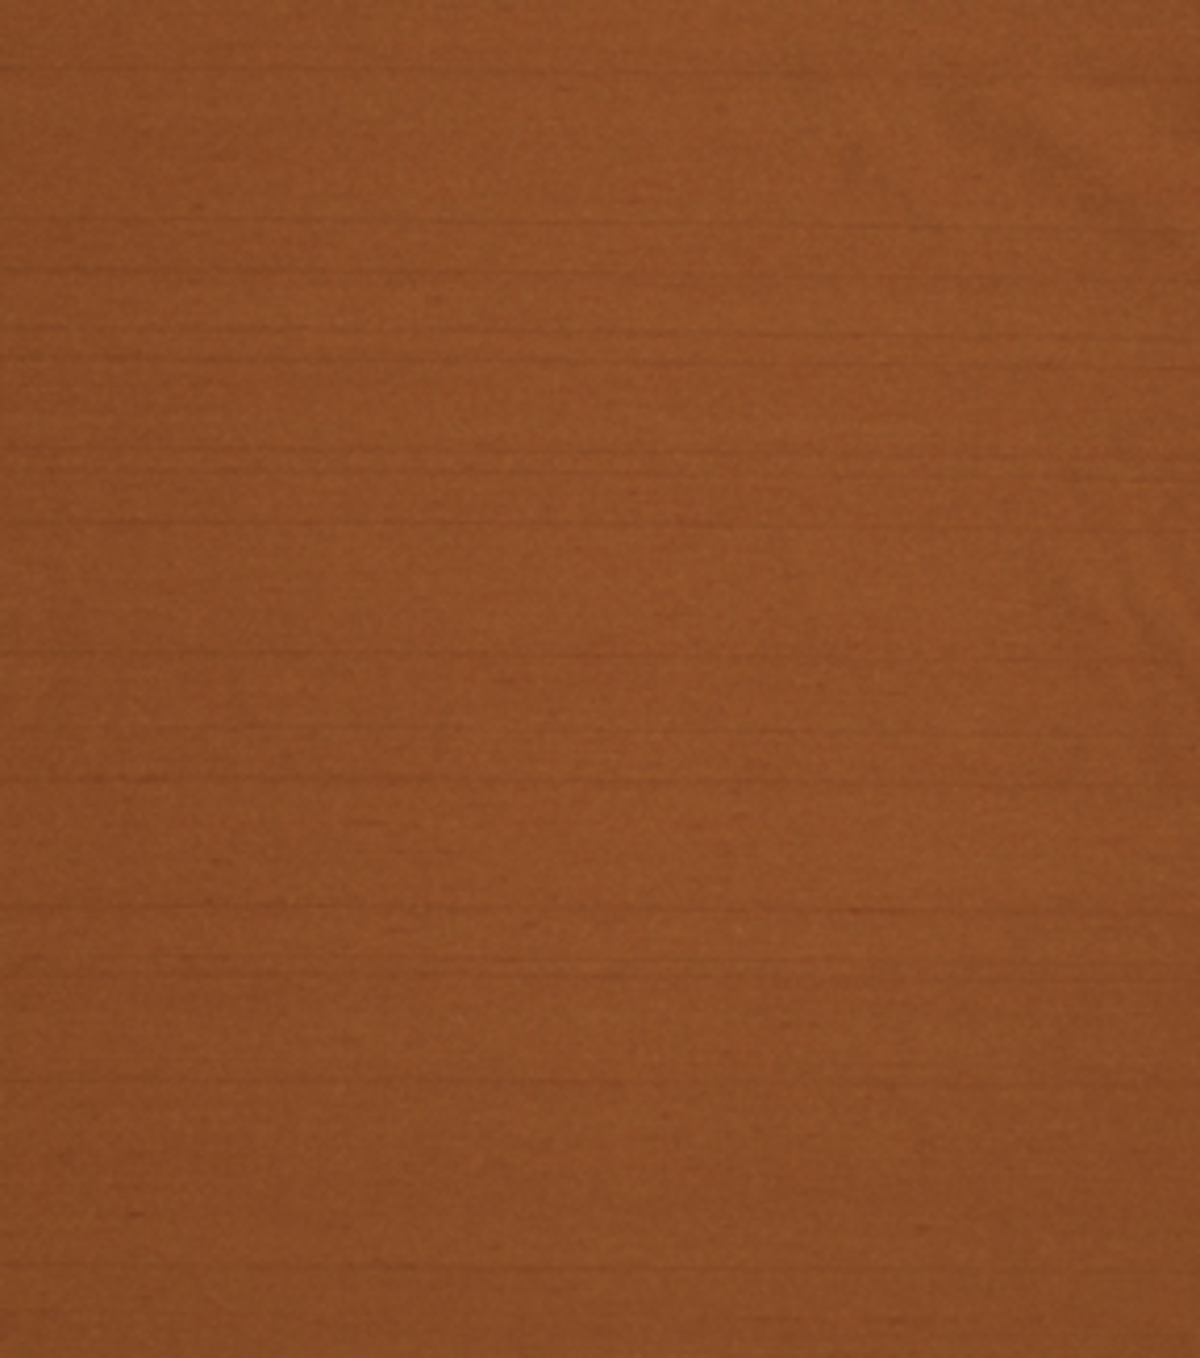 Home Decor 8\u0022x8\u0022 Fabric Swatch-Signature Series Bravo Canyon